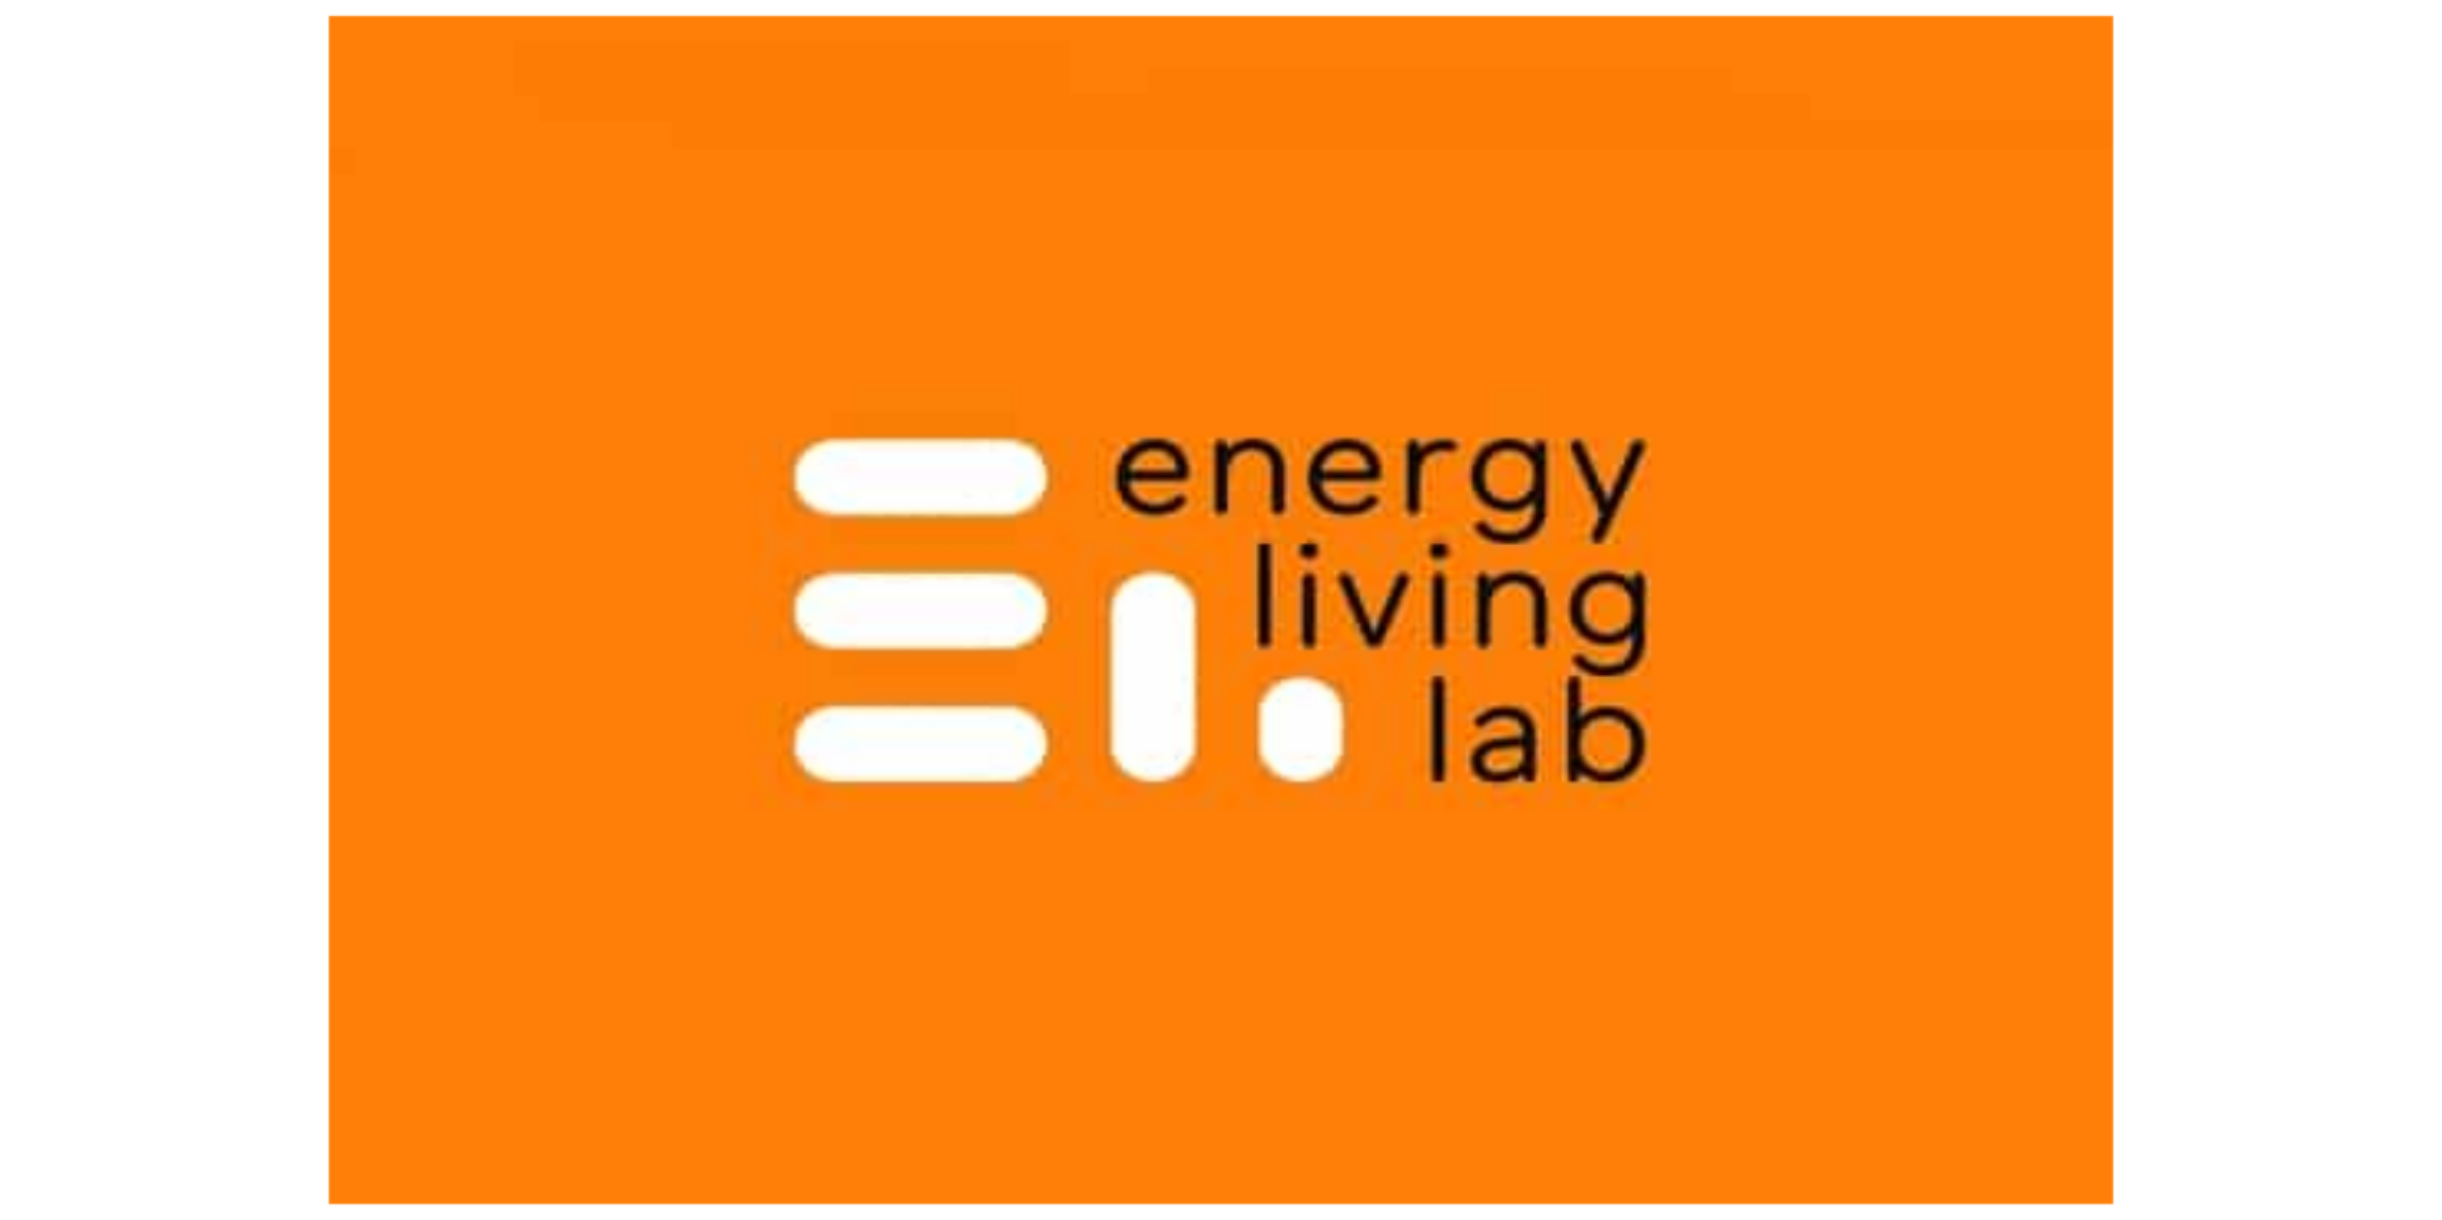 energy-living-lab-1